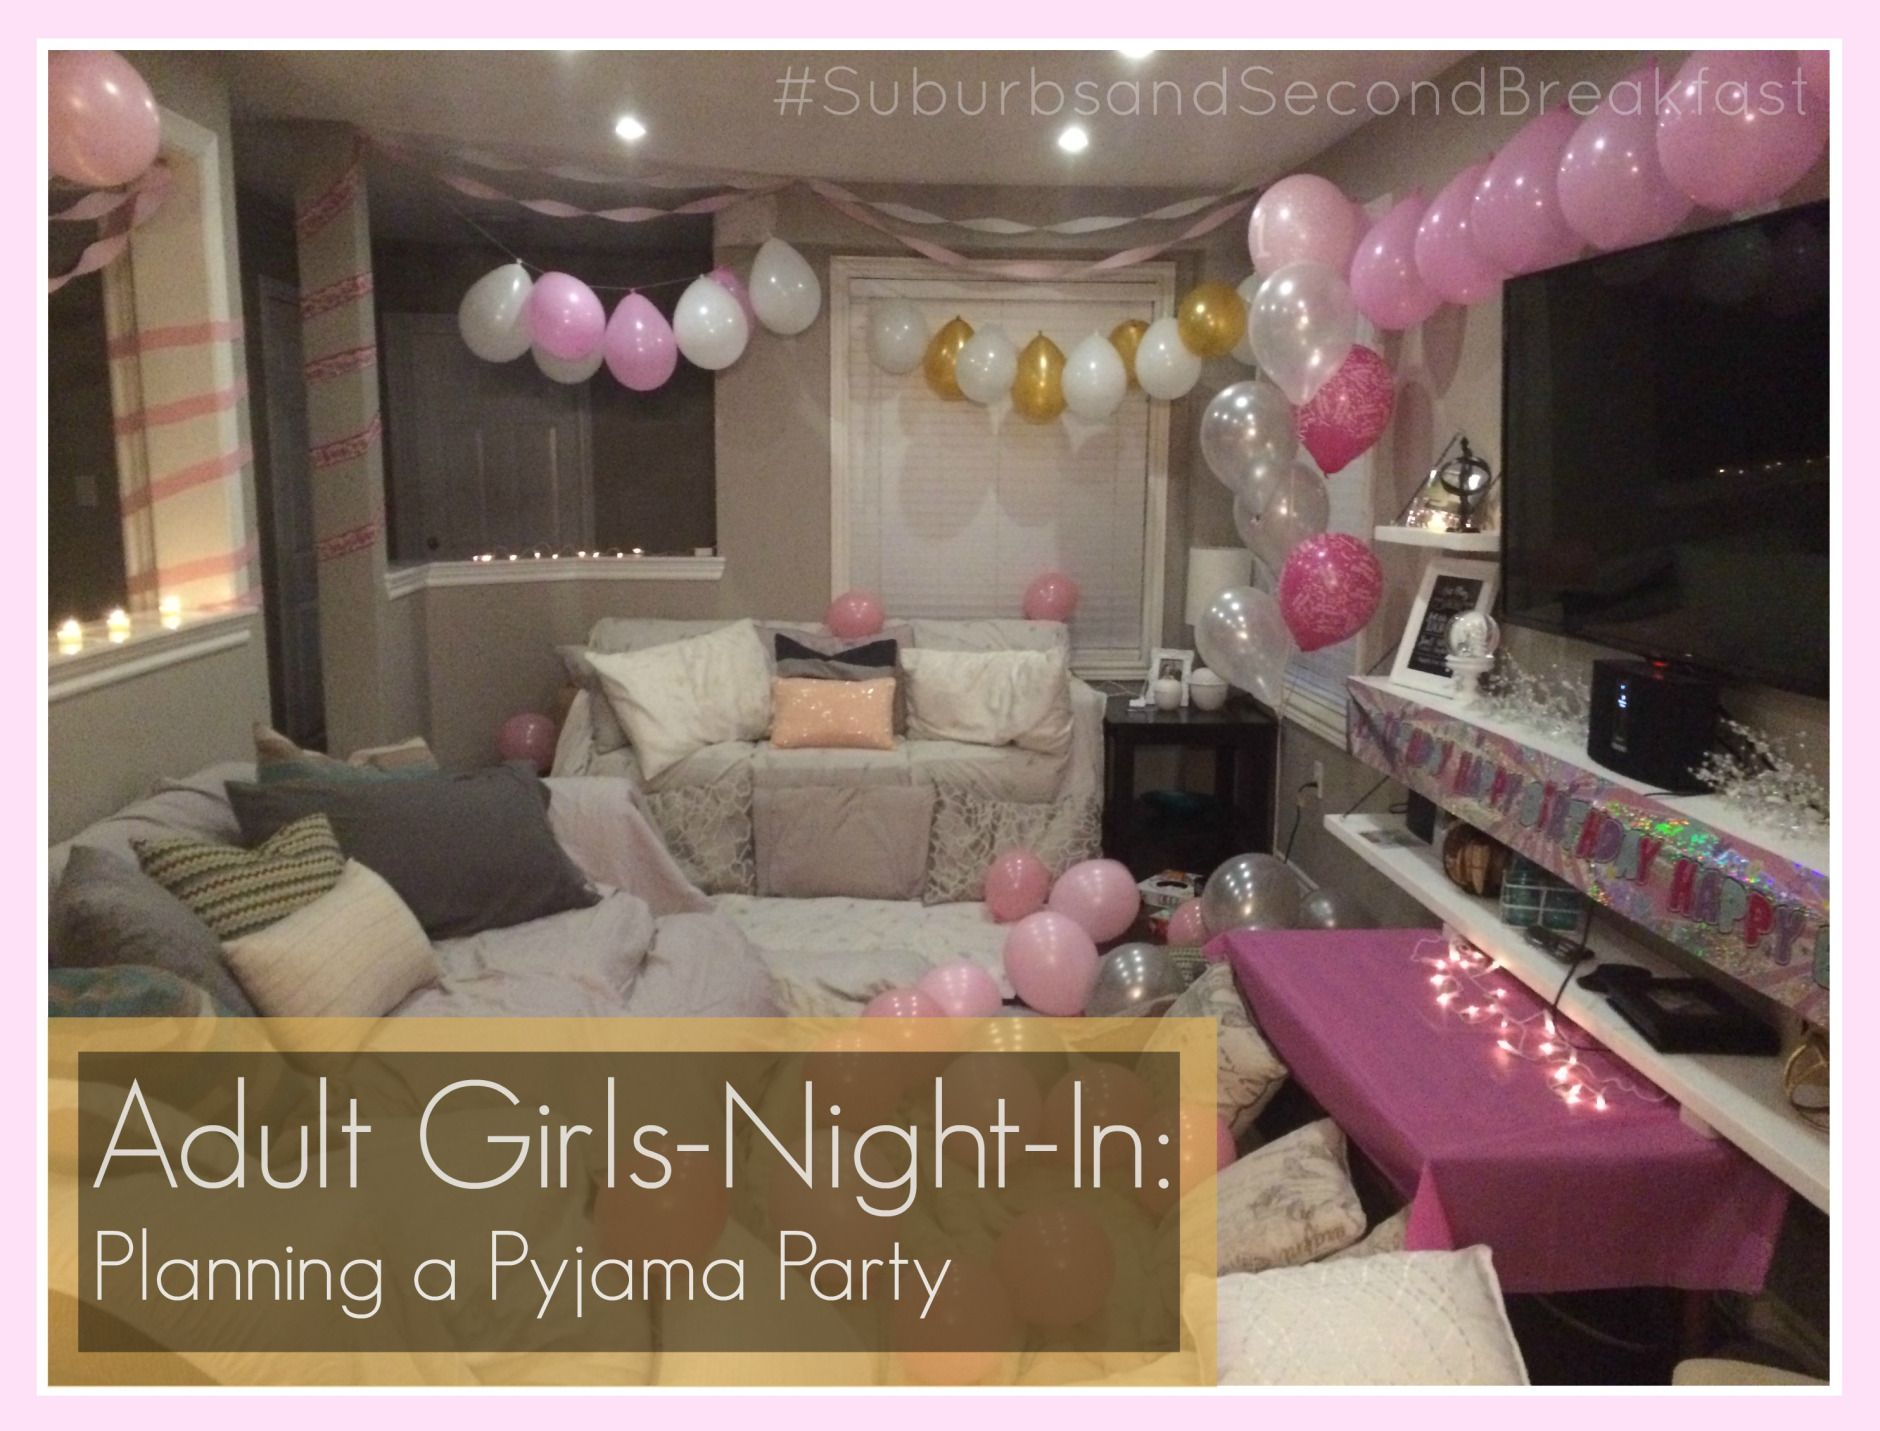 e9f0b7ca87 Adult Girls-Night-In  Planning a Pyjama Party – Suburbs and Second Breakfast